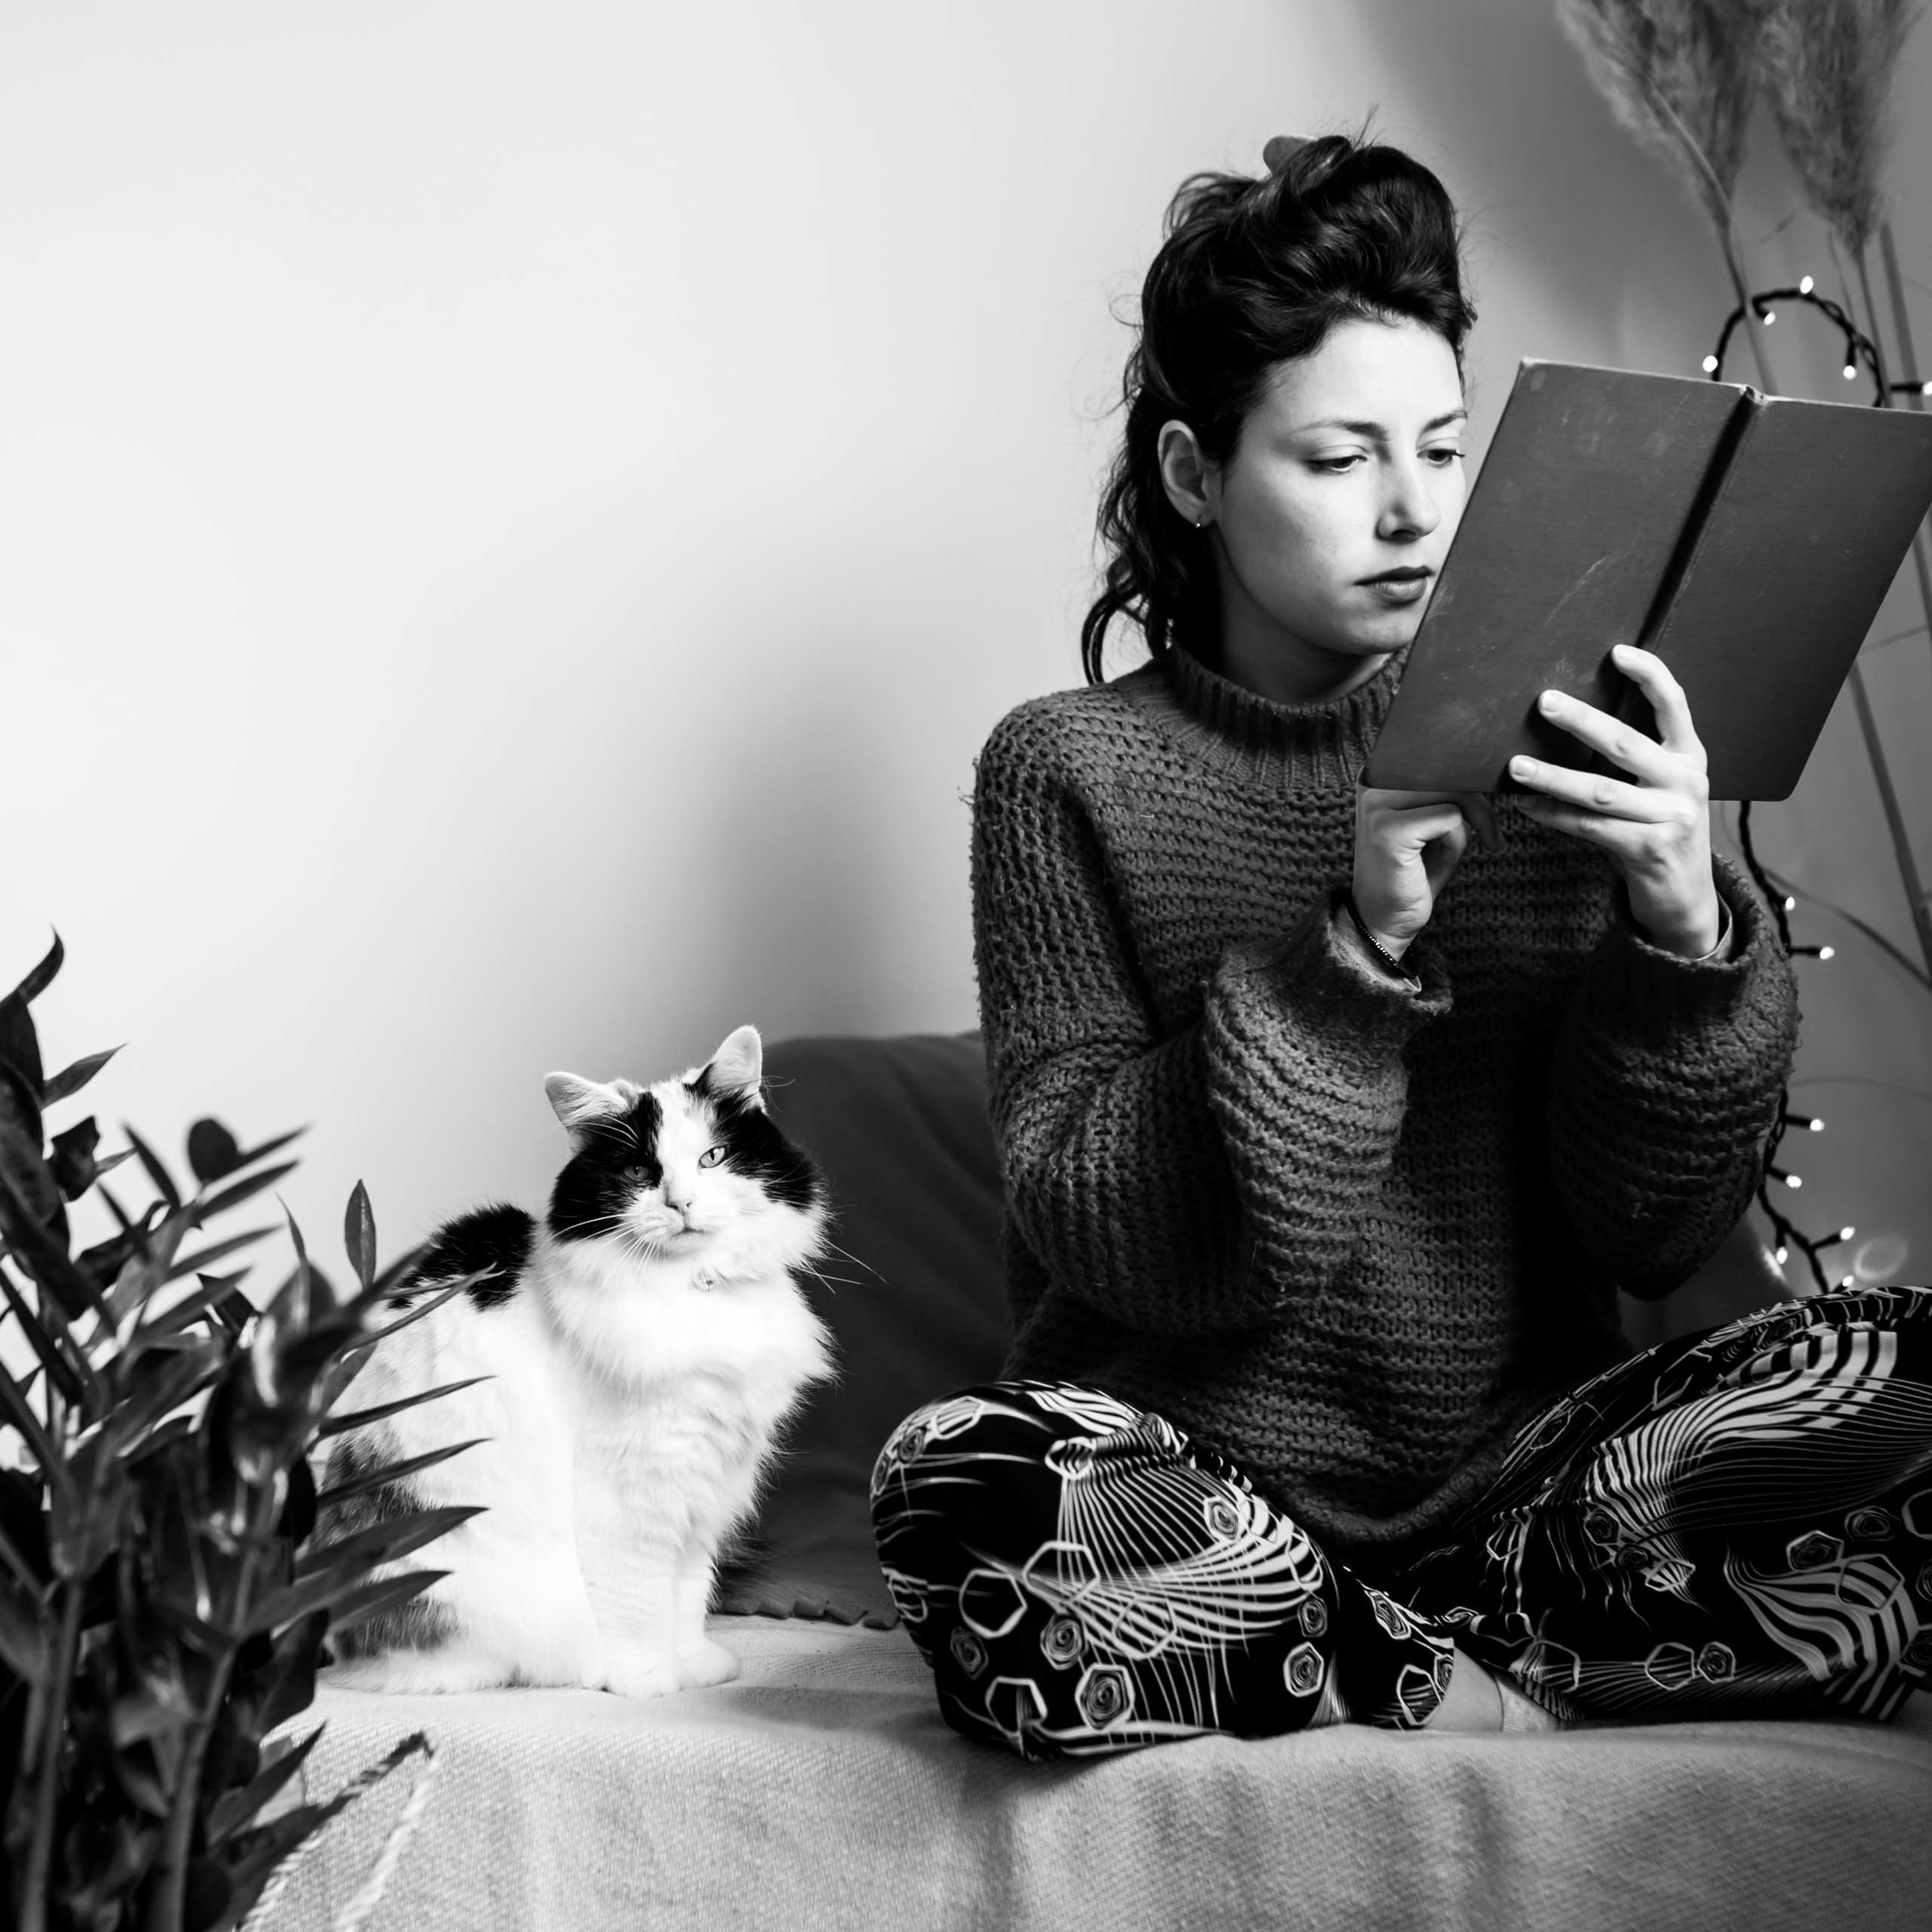 DLegal Law Office - Lady with cat